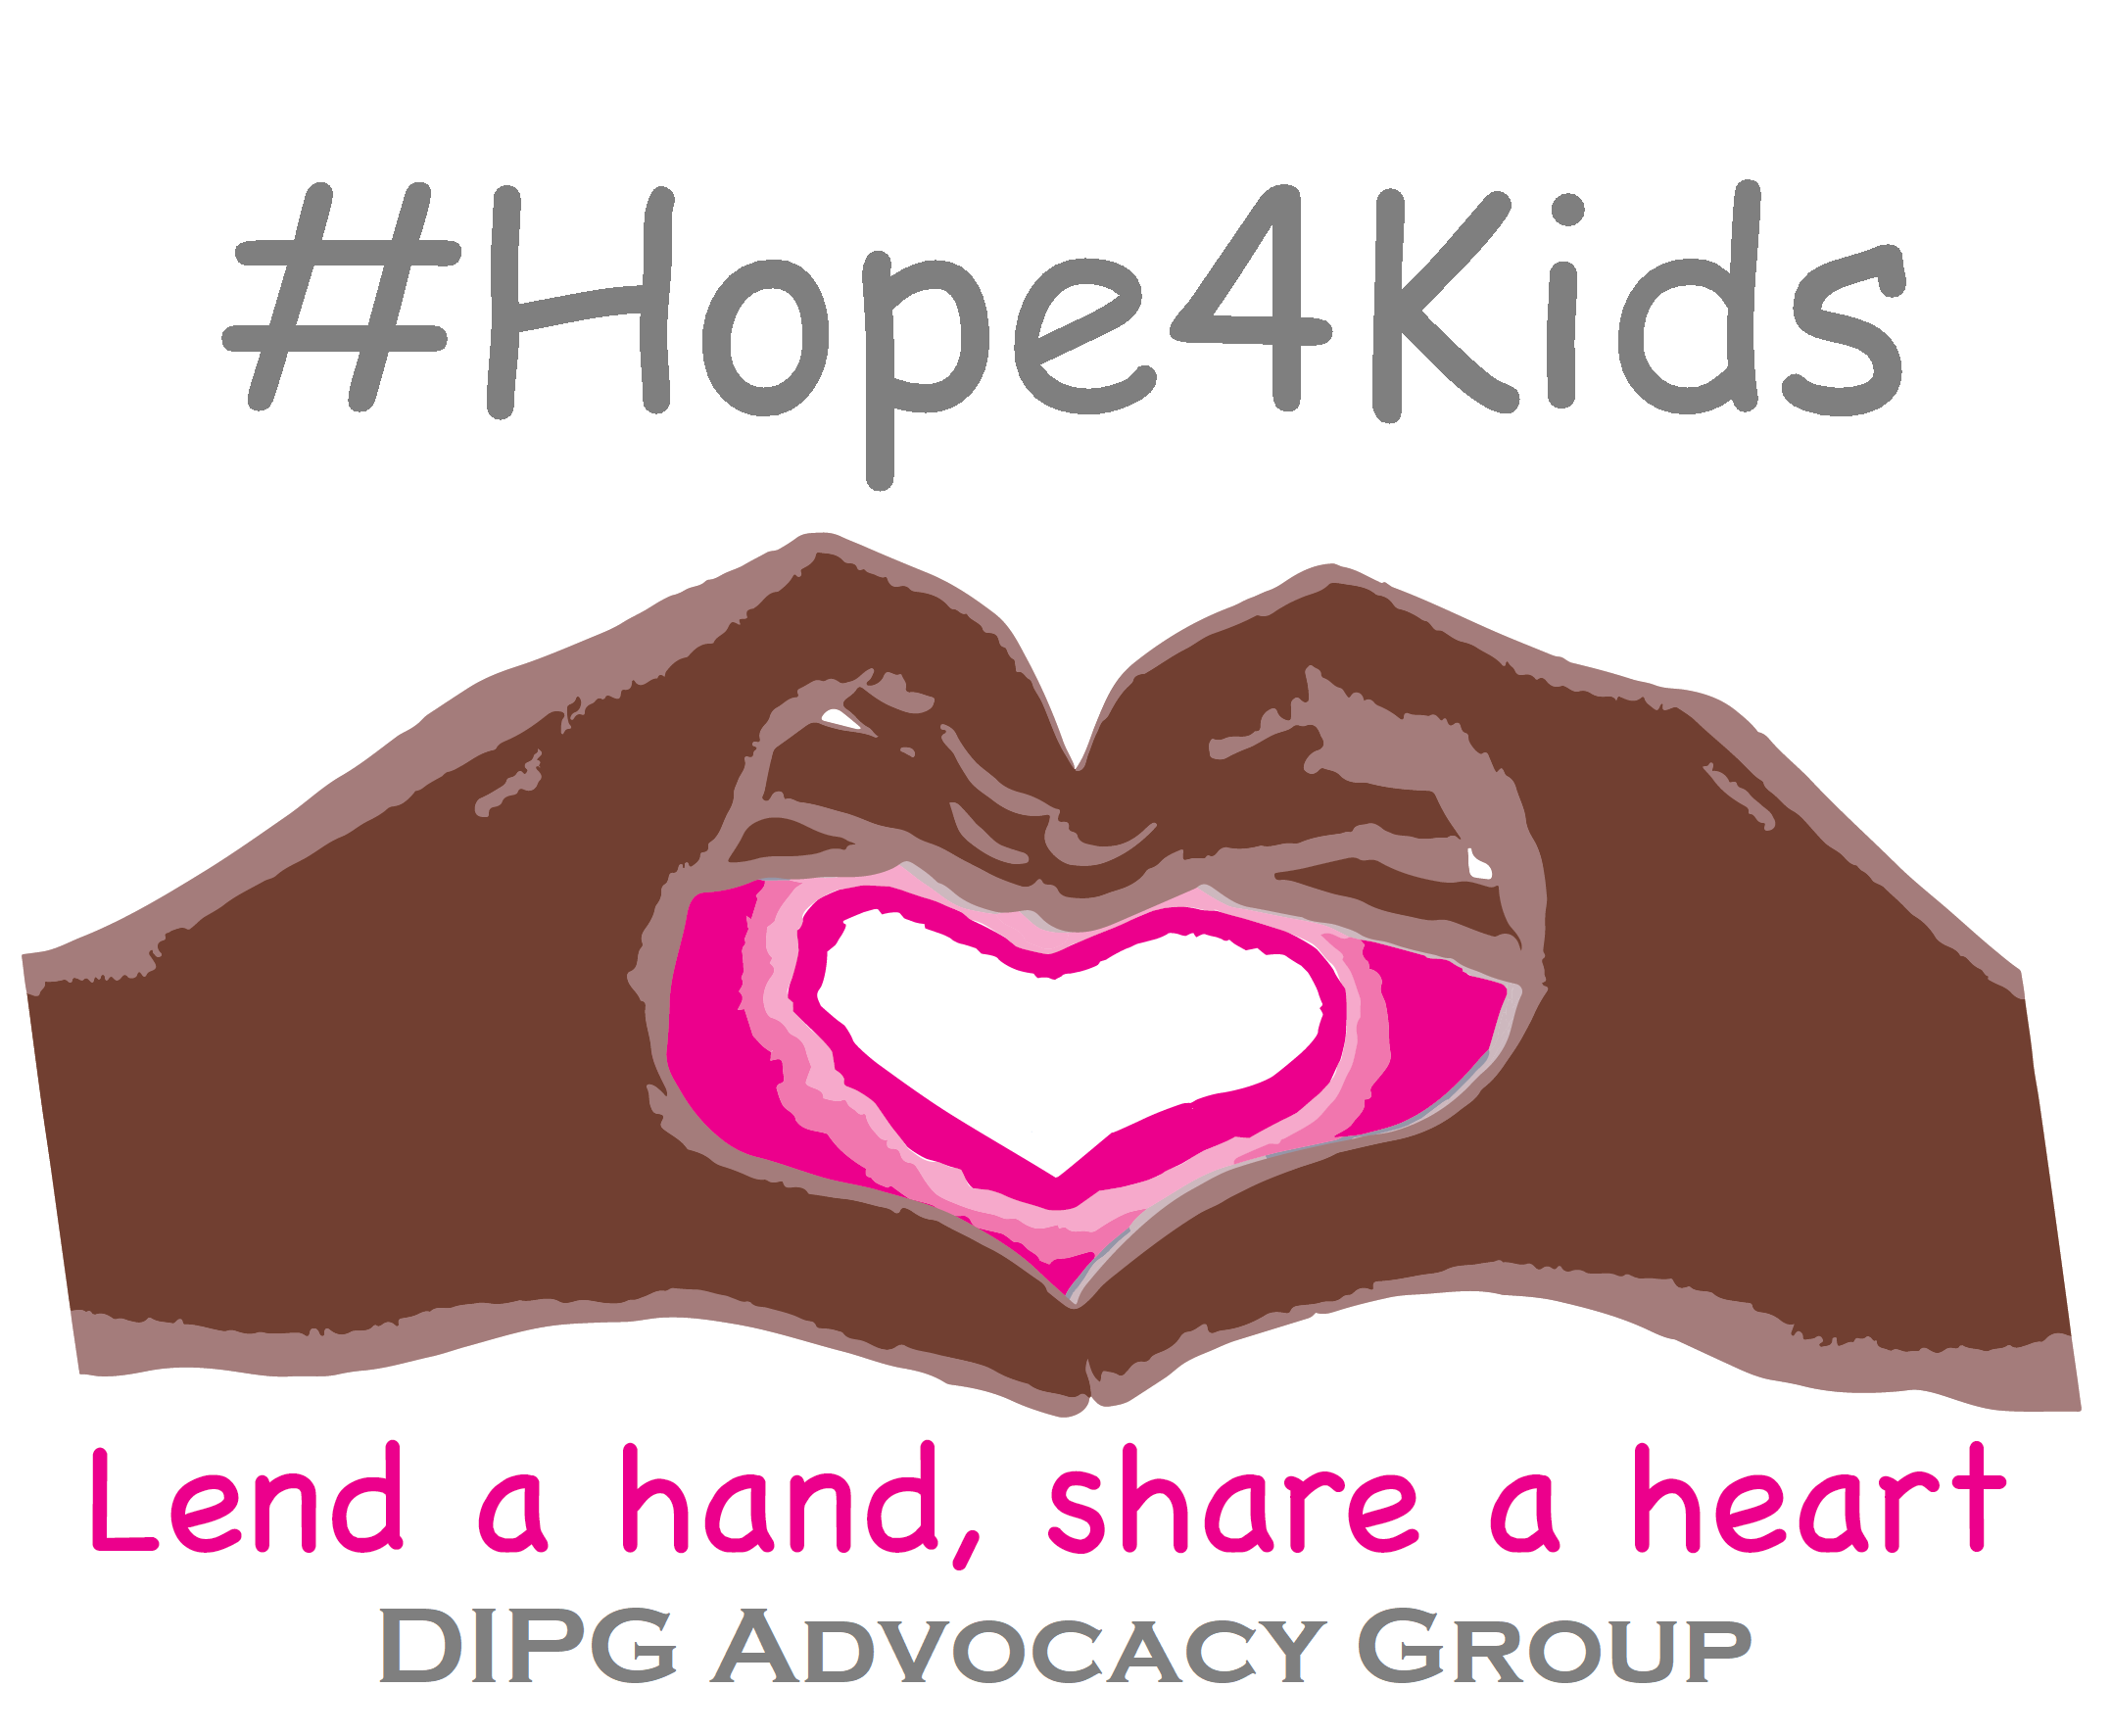 DIPG Advocacy Group site